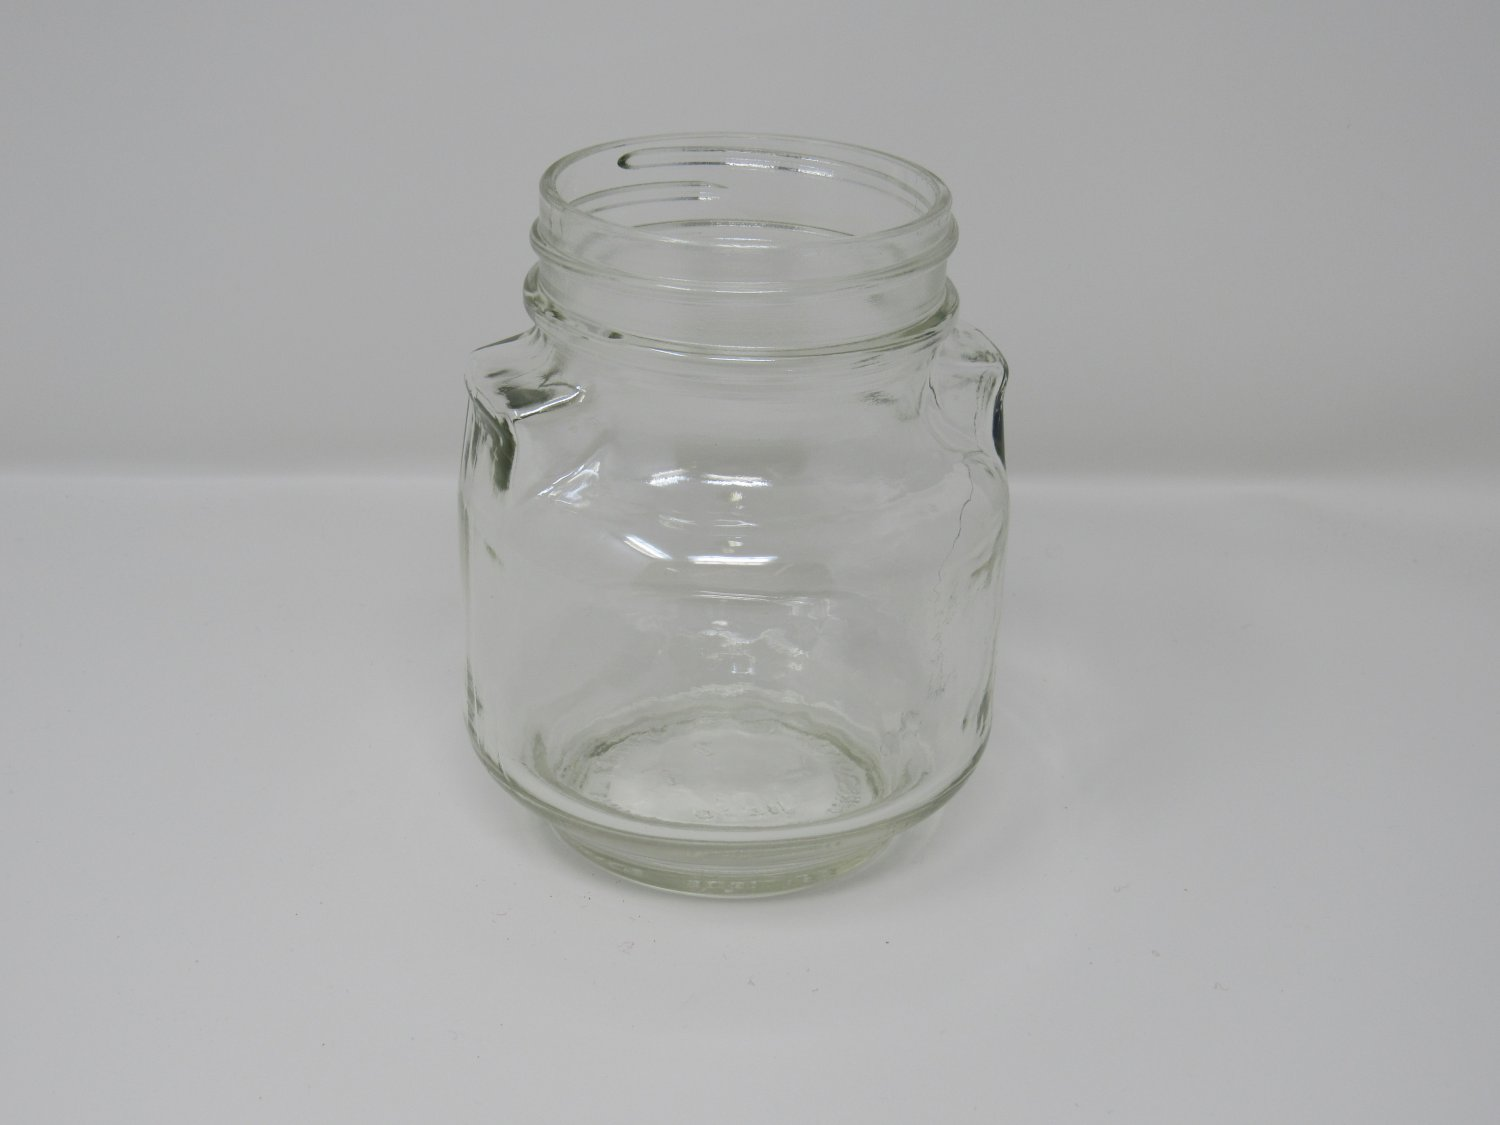 Consumers Glass Screw Top Jar 4in L x 4in W x 5in H Clear Vintage Glass